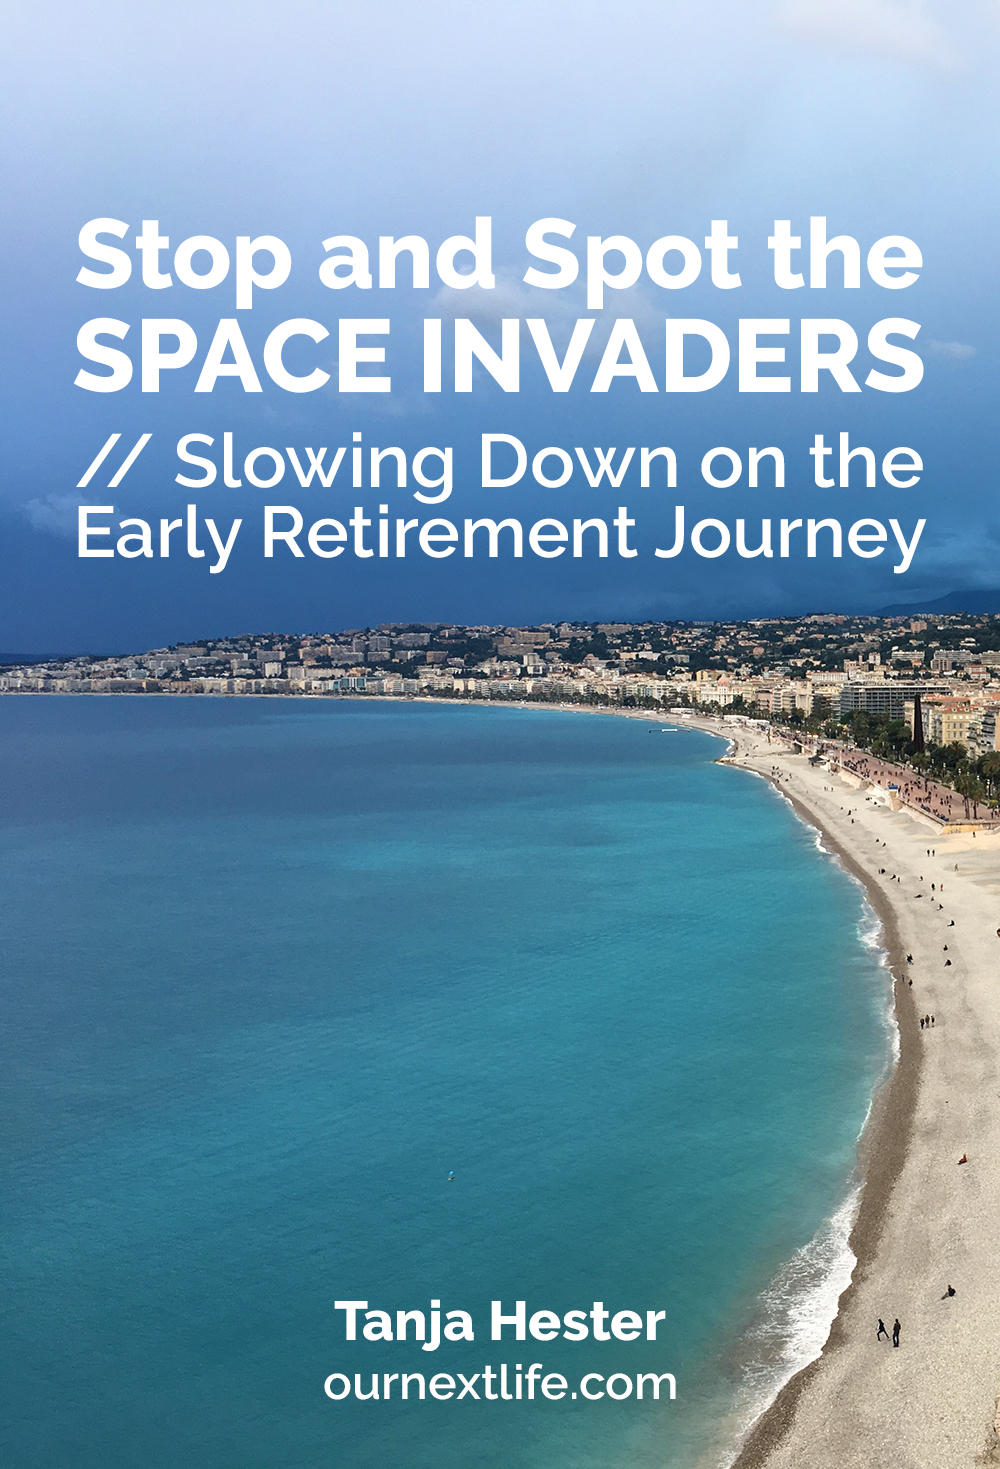 Stop and Spot the Space Invaders, Slowing Down on the Early Retirement Journey, by Tanja Hester, author of Work Optional: Retire Early the Non-Penny-Pinching Way and the Our Next Life financial independence blog